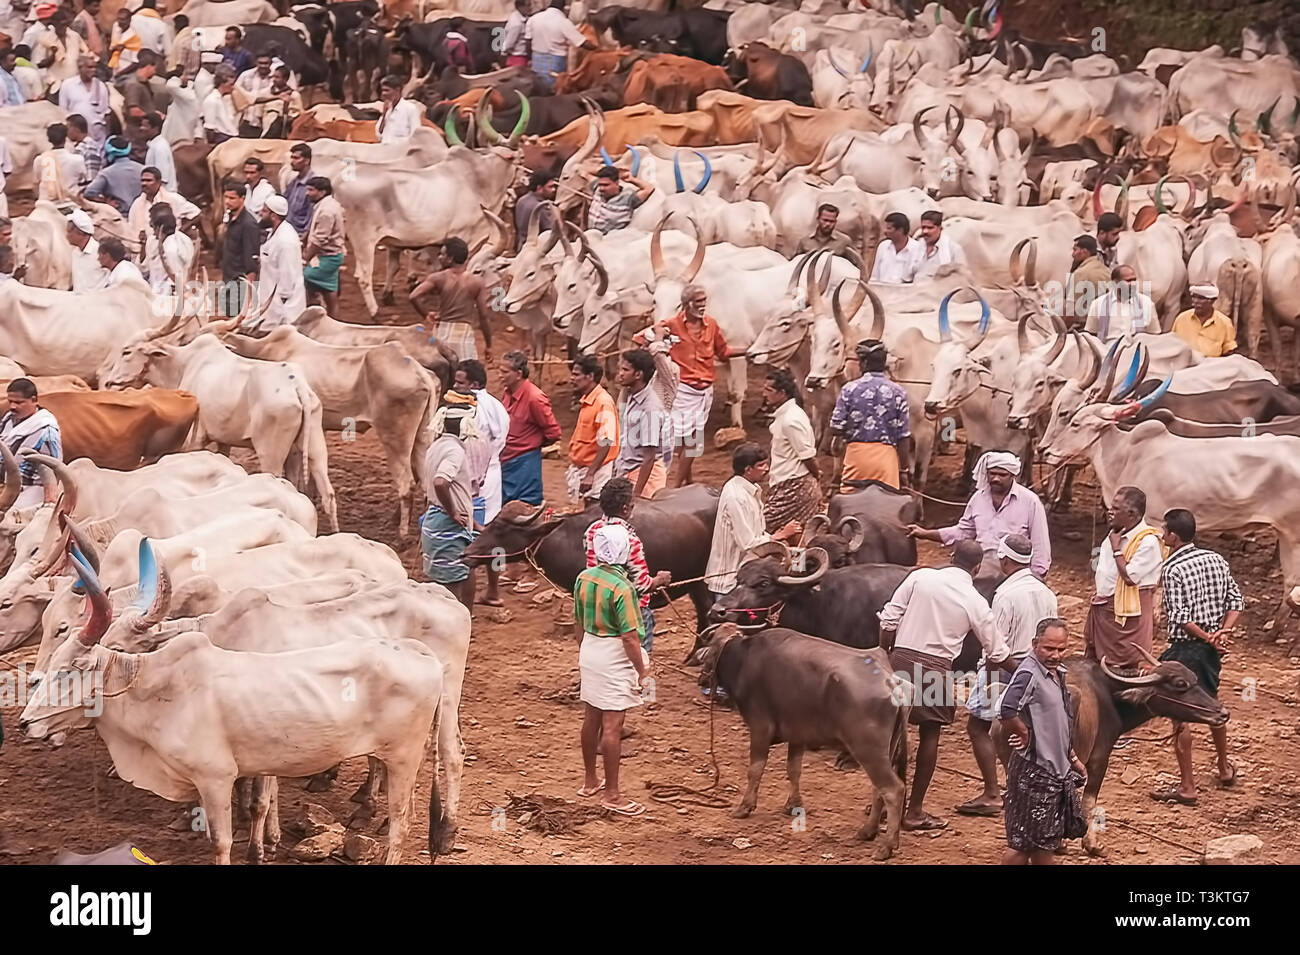 Cattle Market Kerala India Stock Photos & Cattle Market